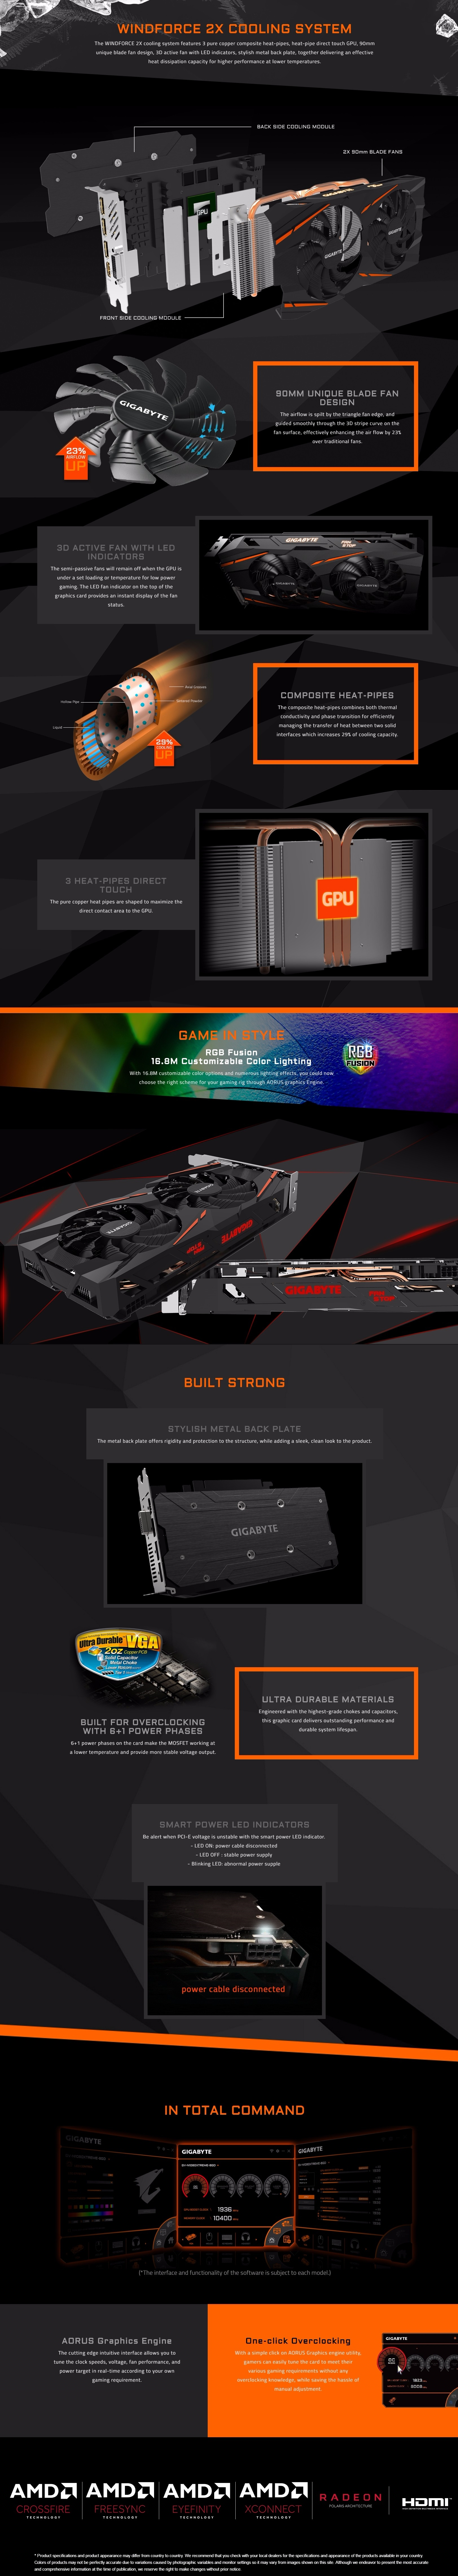 Gigabyte Radeon RX 570 Gaming 4GB Graphics Card